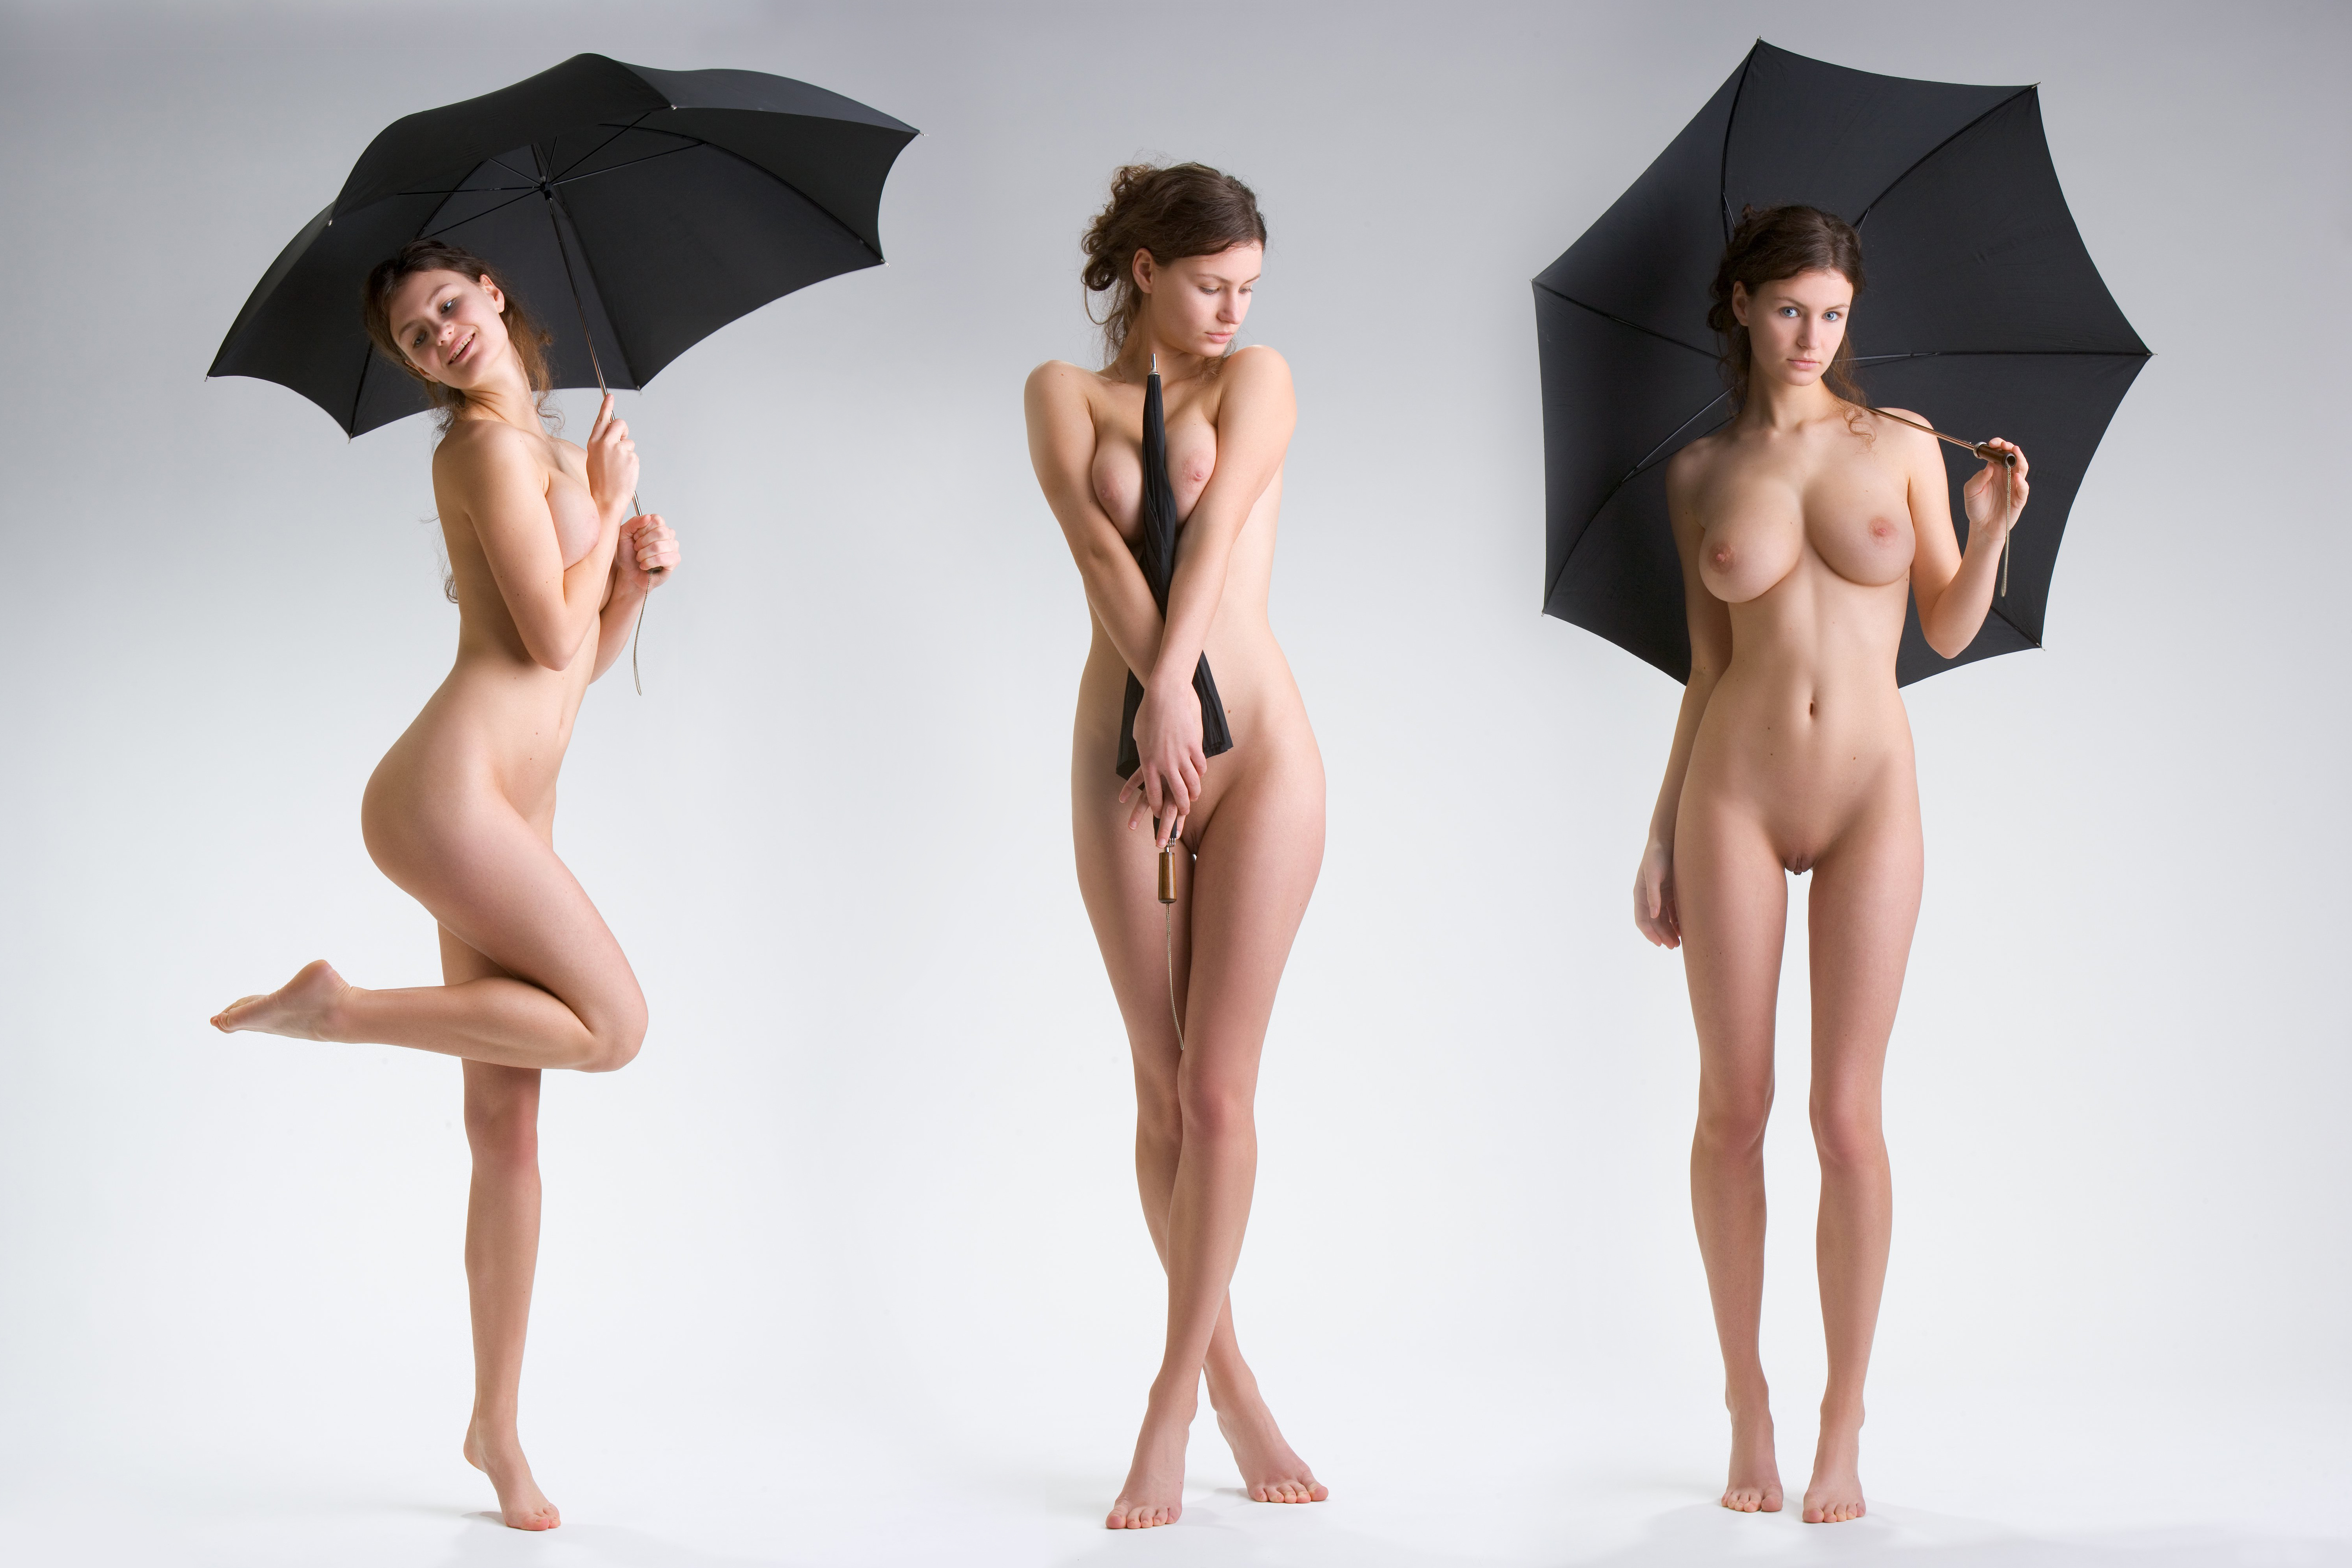 Perfect hourglass nude women can